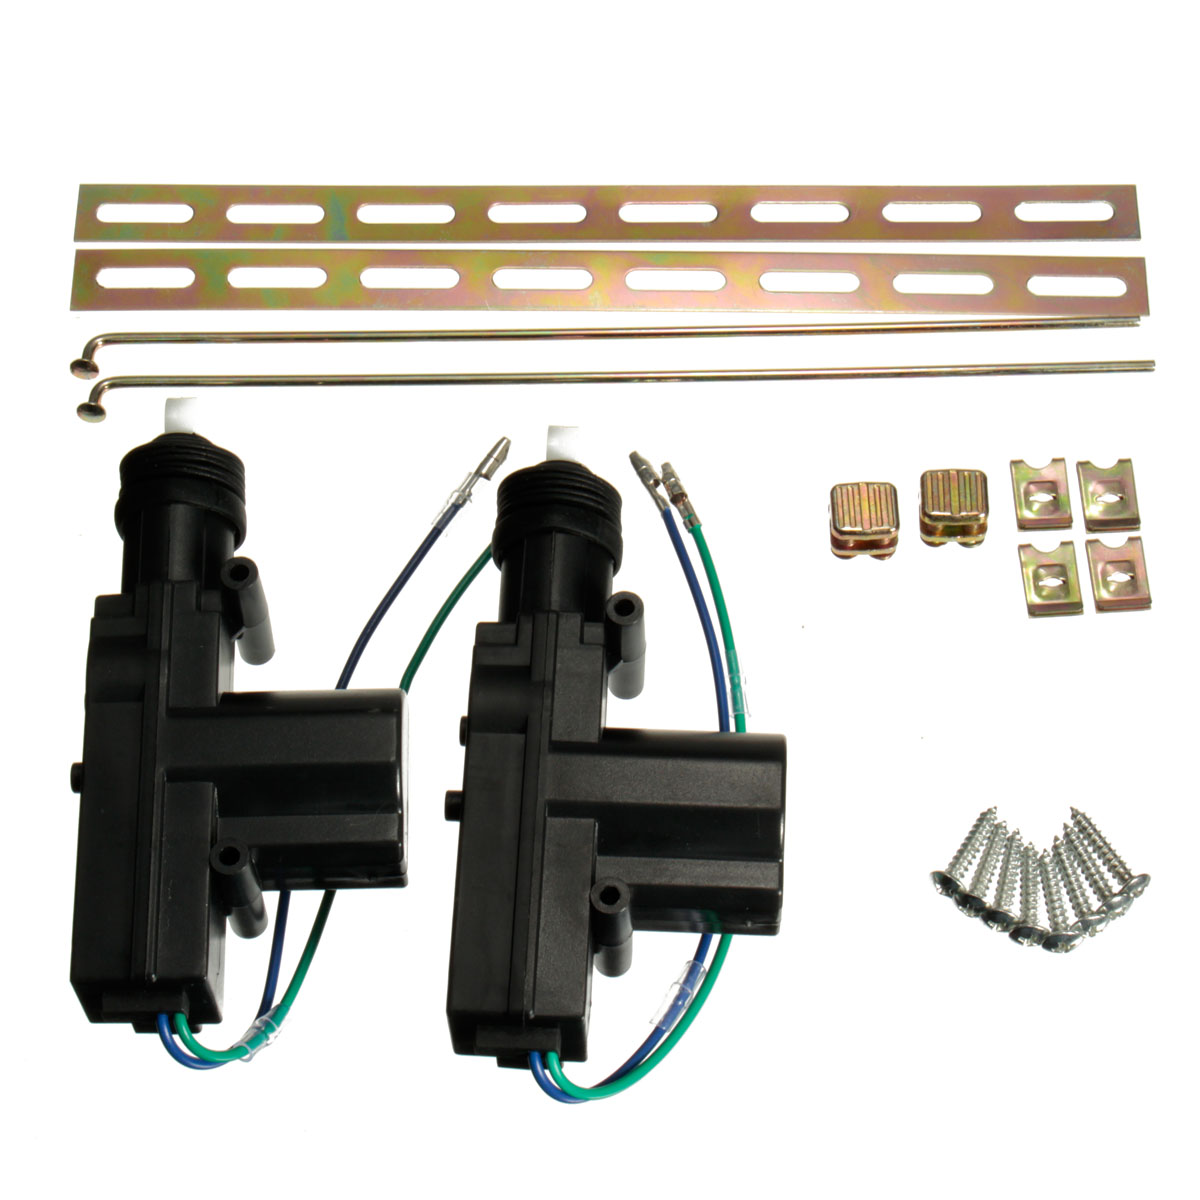 2 X 12V Universal Car Door Power Central Lock Motor Kit With 2 Wire Actuator Auto Vehicle Remote Central Locking System Motor